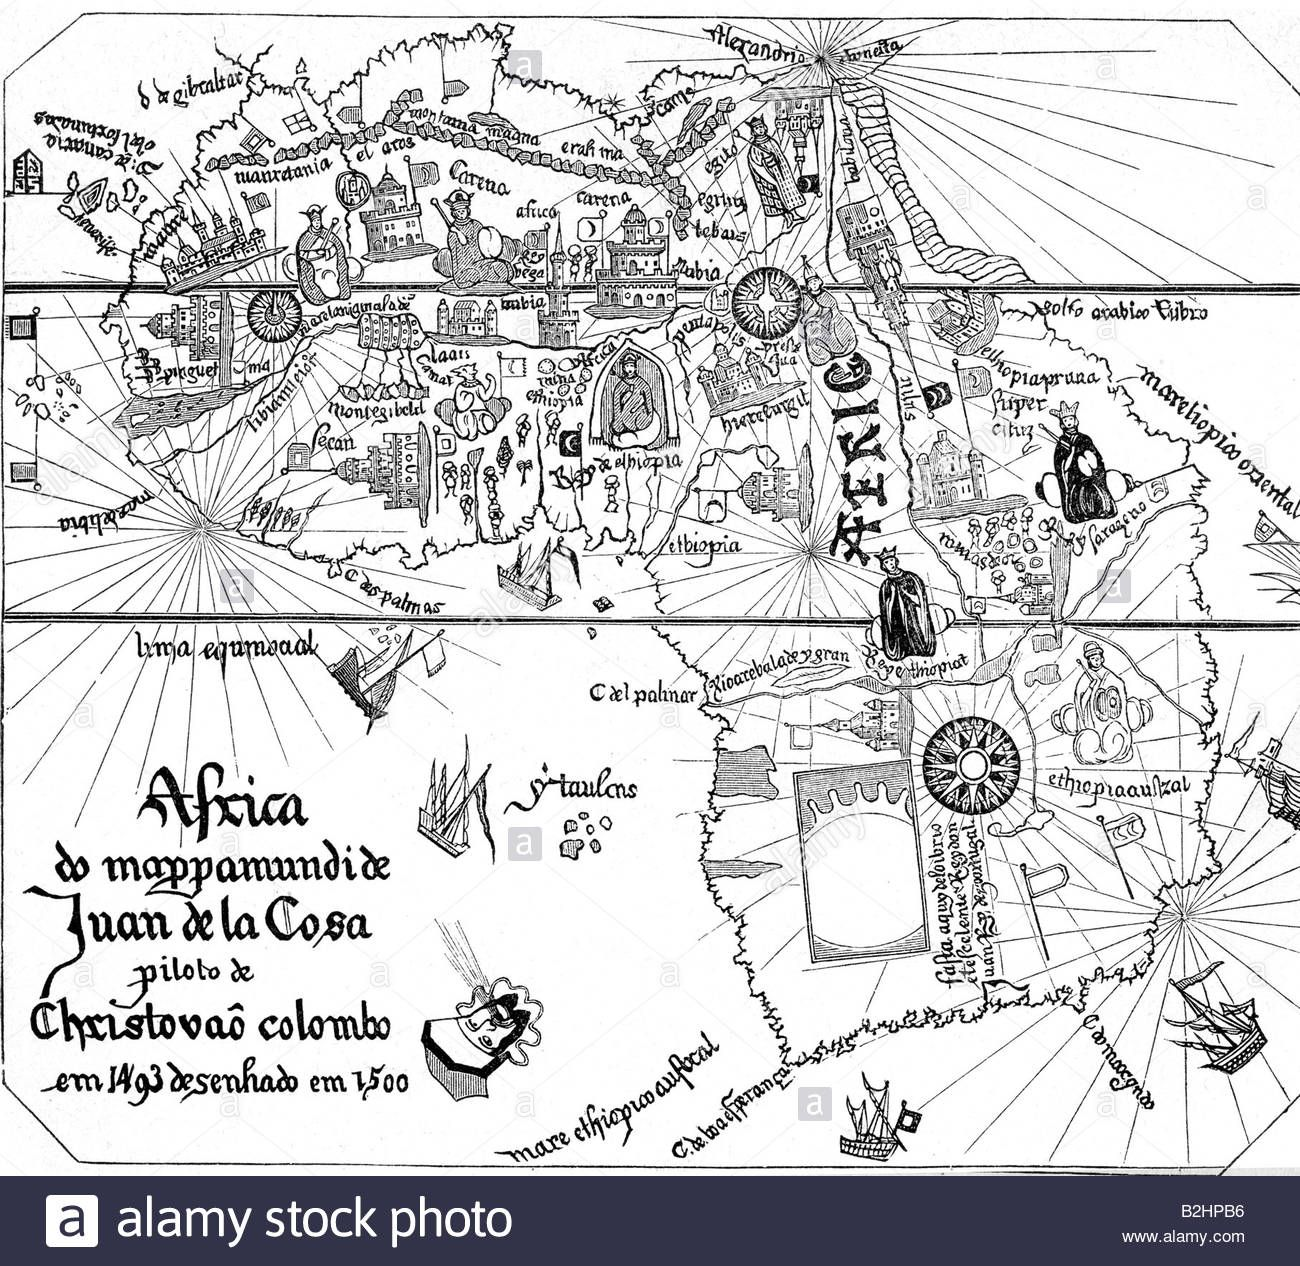 cartography, maps, Africa, detail from the world map of Juan de la